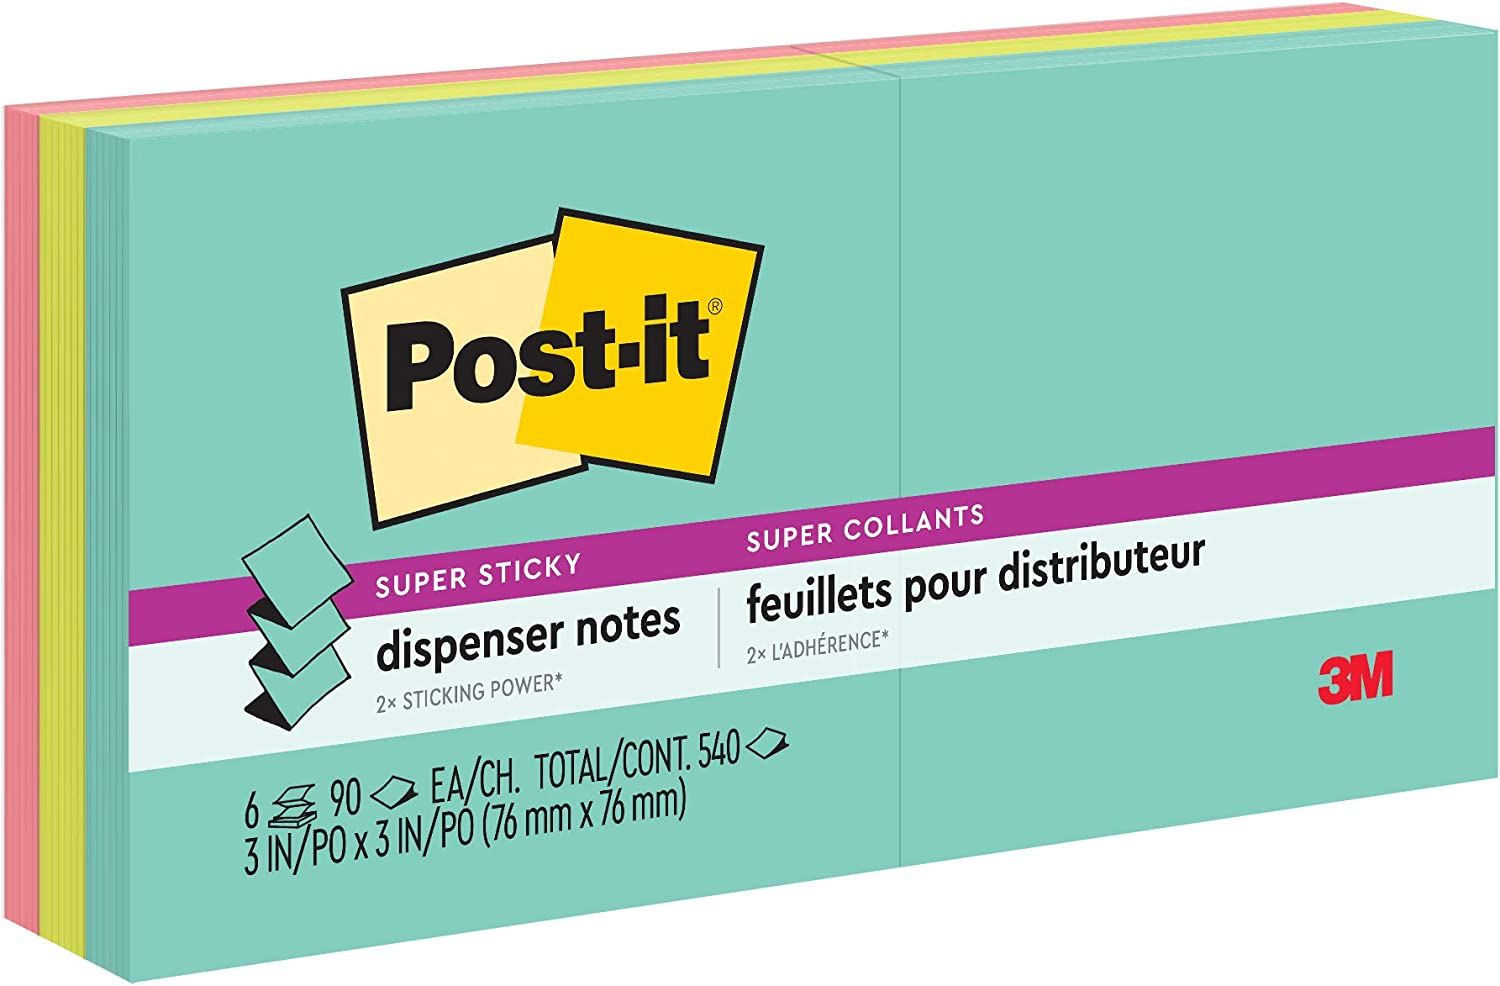 Post-it Super Sticky Pop-up Notes, 3x3 in, 6 Pads, 2x the Sticking Power, Miami Collection, Neon Colors (Orange, Pink, Blue, Green), Recyclable (R330-6SSMIA)